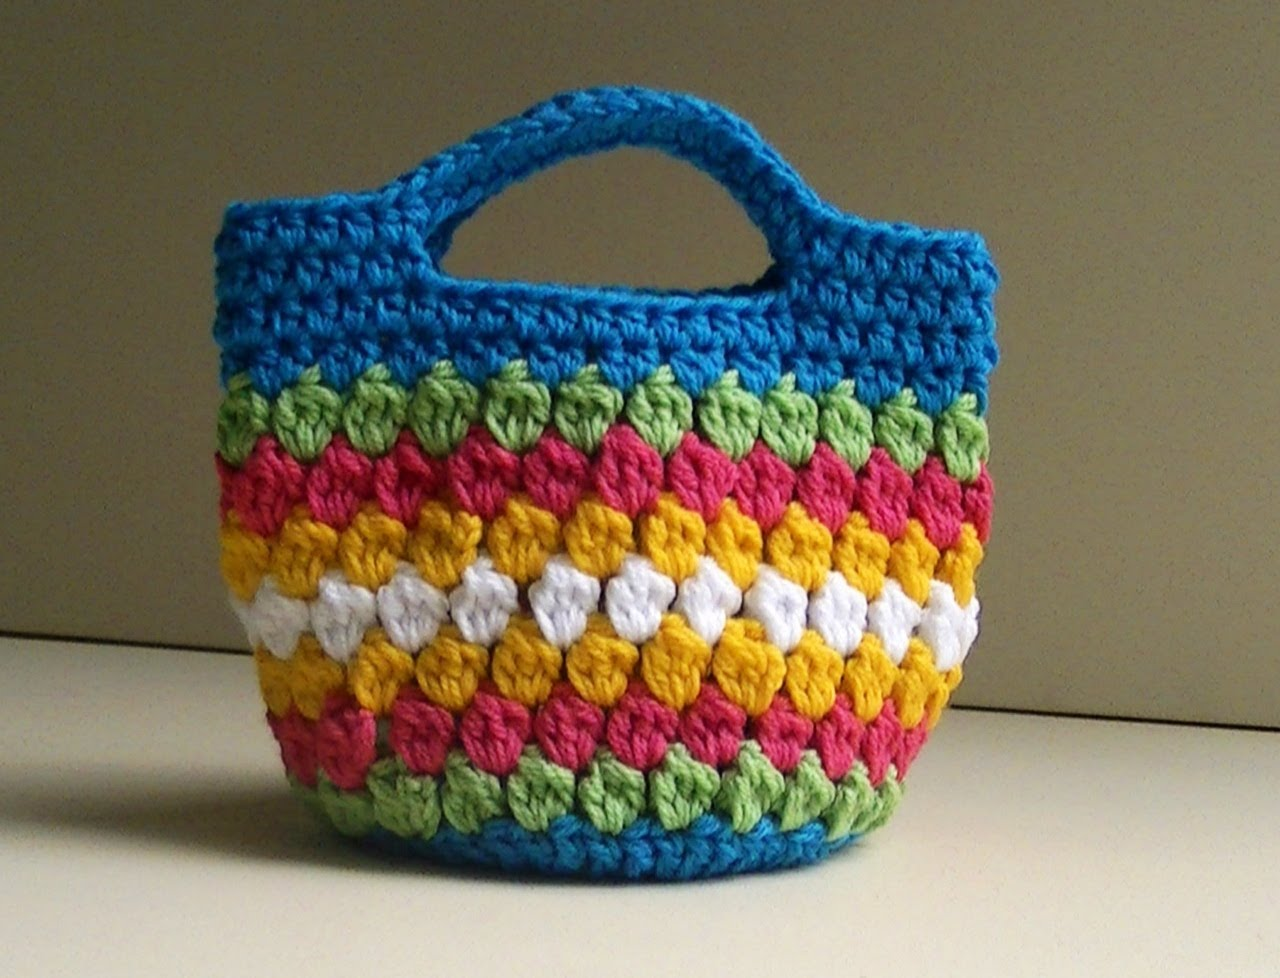 Crochet Purse Ideas : Cluster Stitch Bag Crochet ( Video Tutorial ) - The Spinners Husband